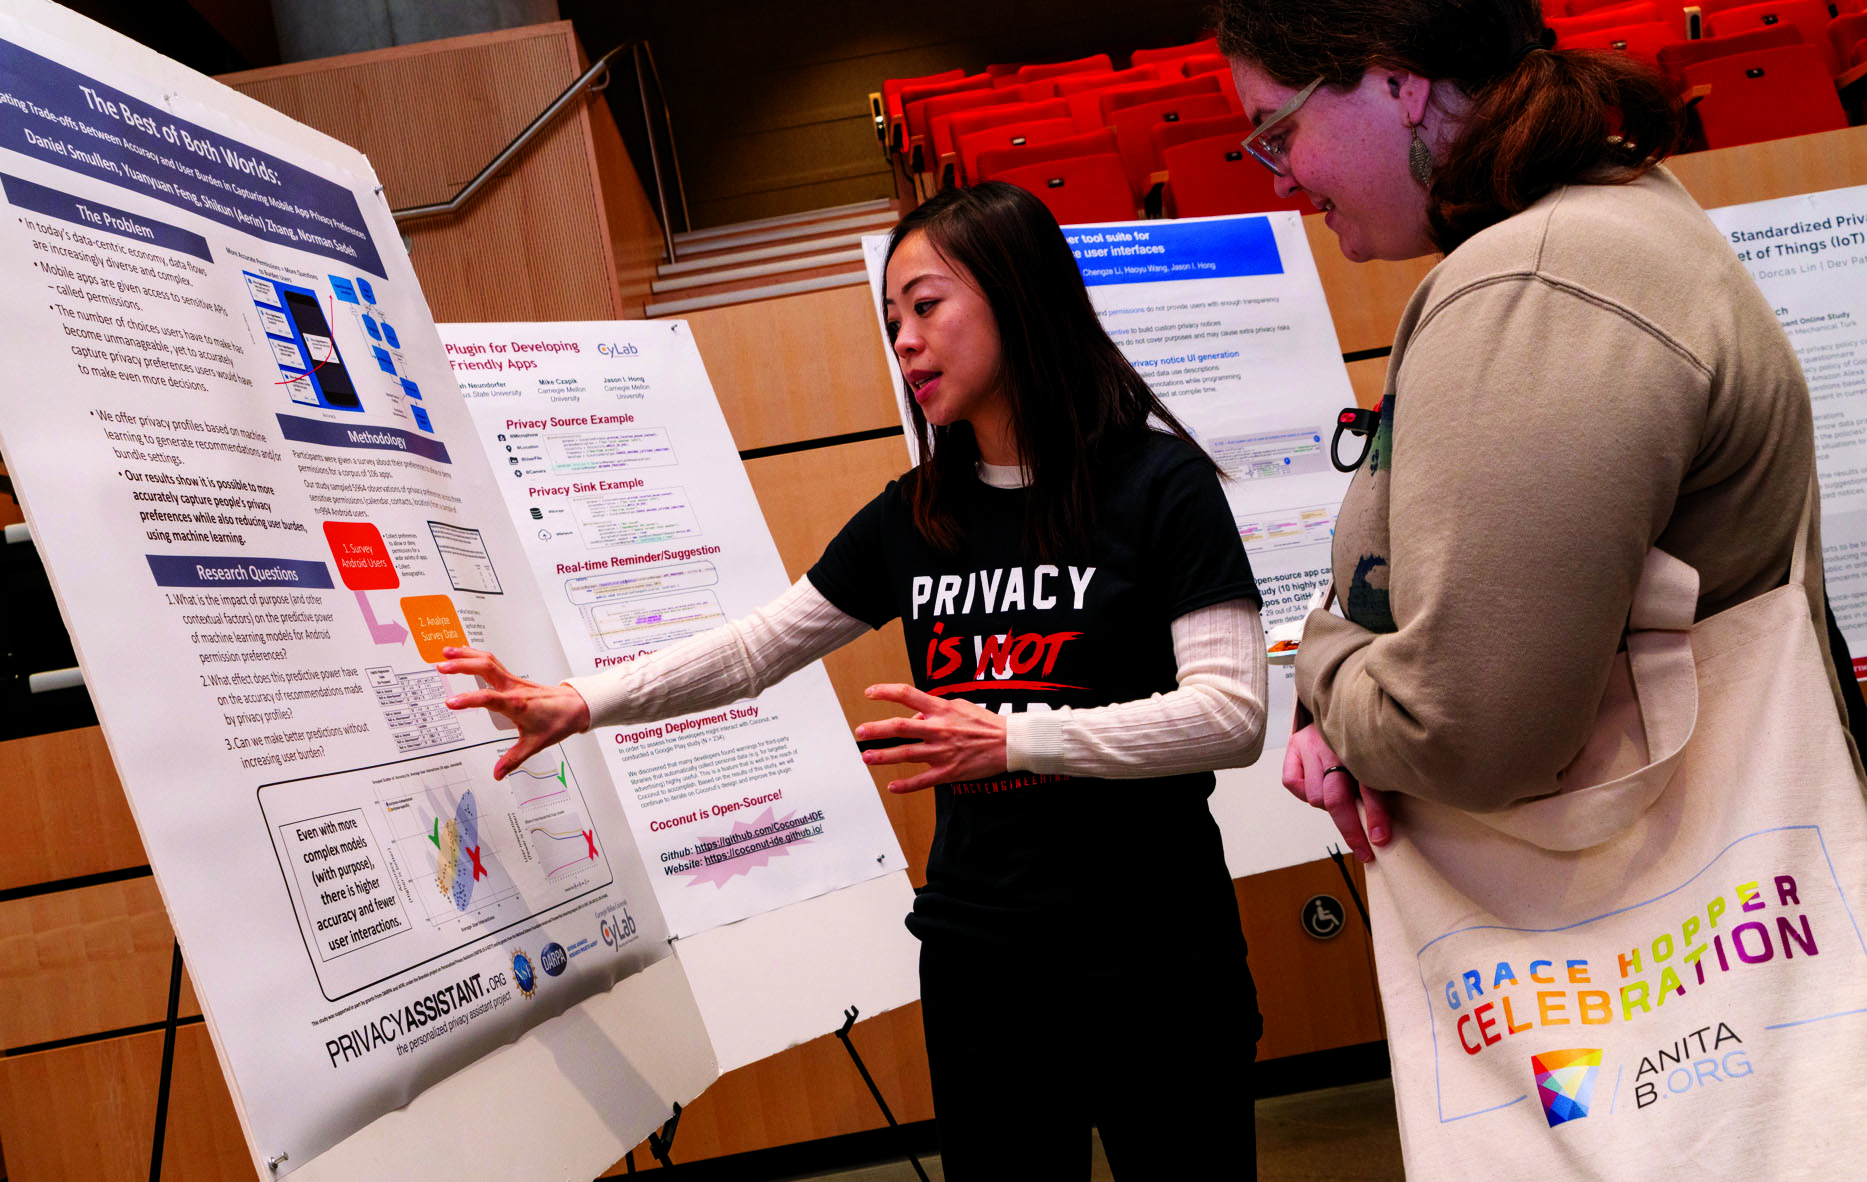 A researcher discusses her work on the privacyassistant.org project with an event attendee.